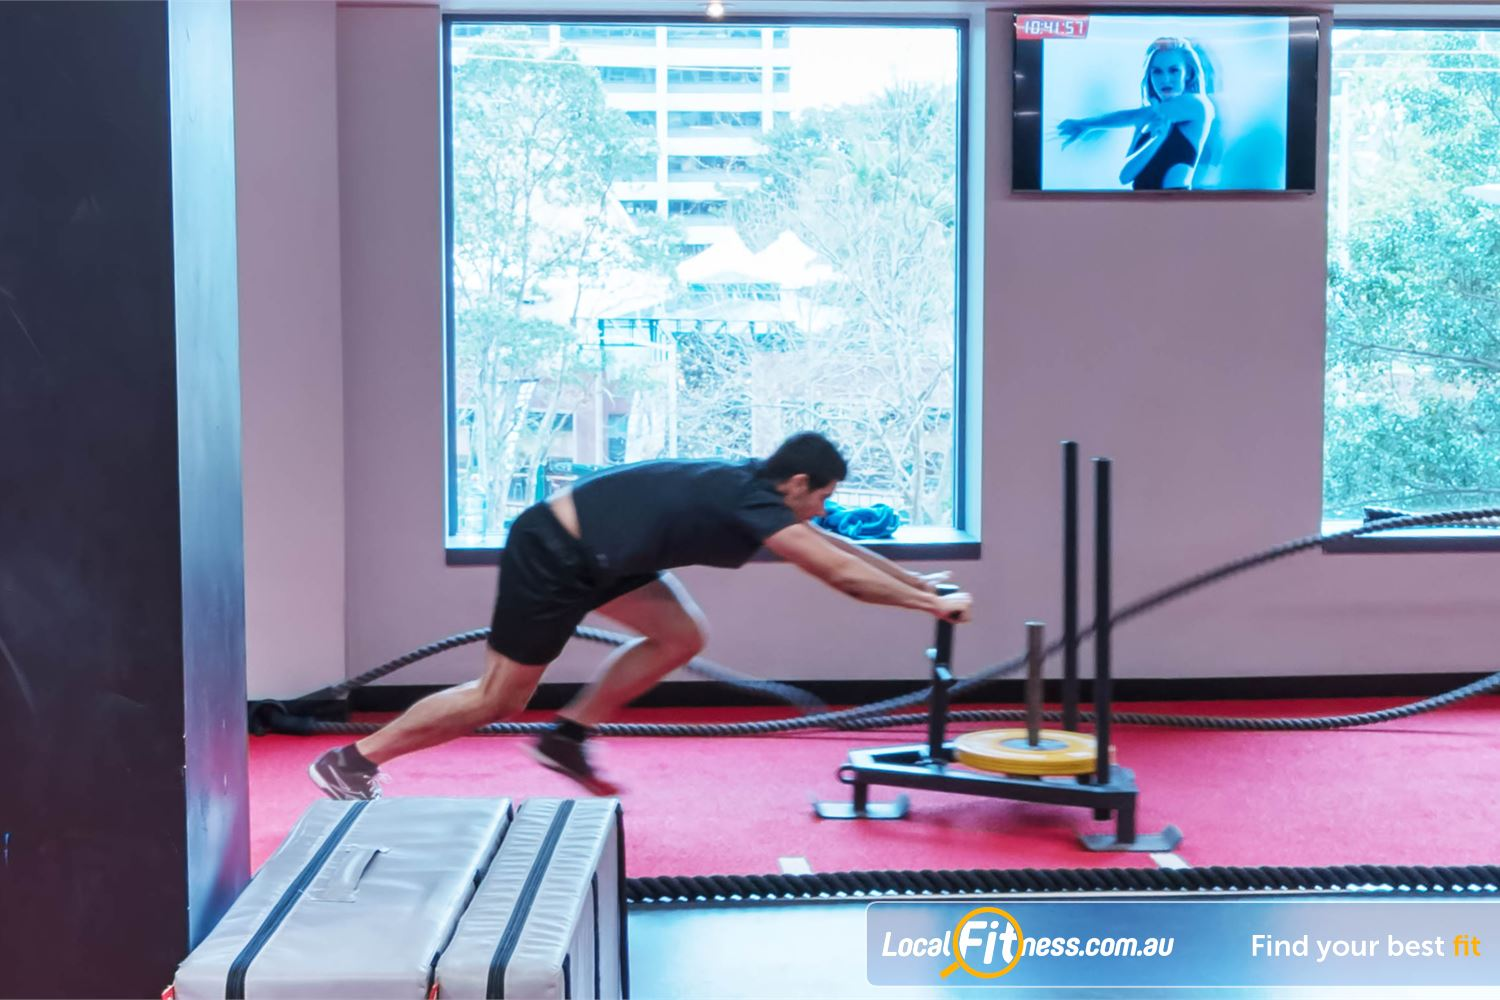 Fitness First Elizabeth Plaza Near Waverton Improve your conditioning with prowler runs on our sled track.